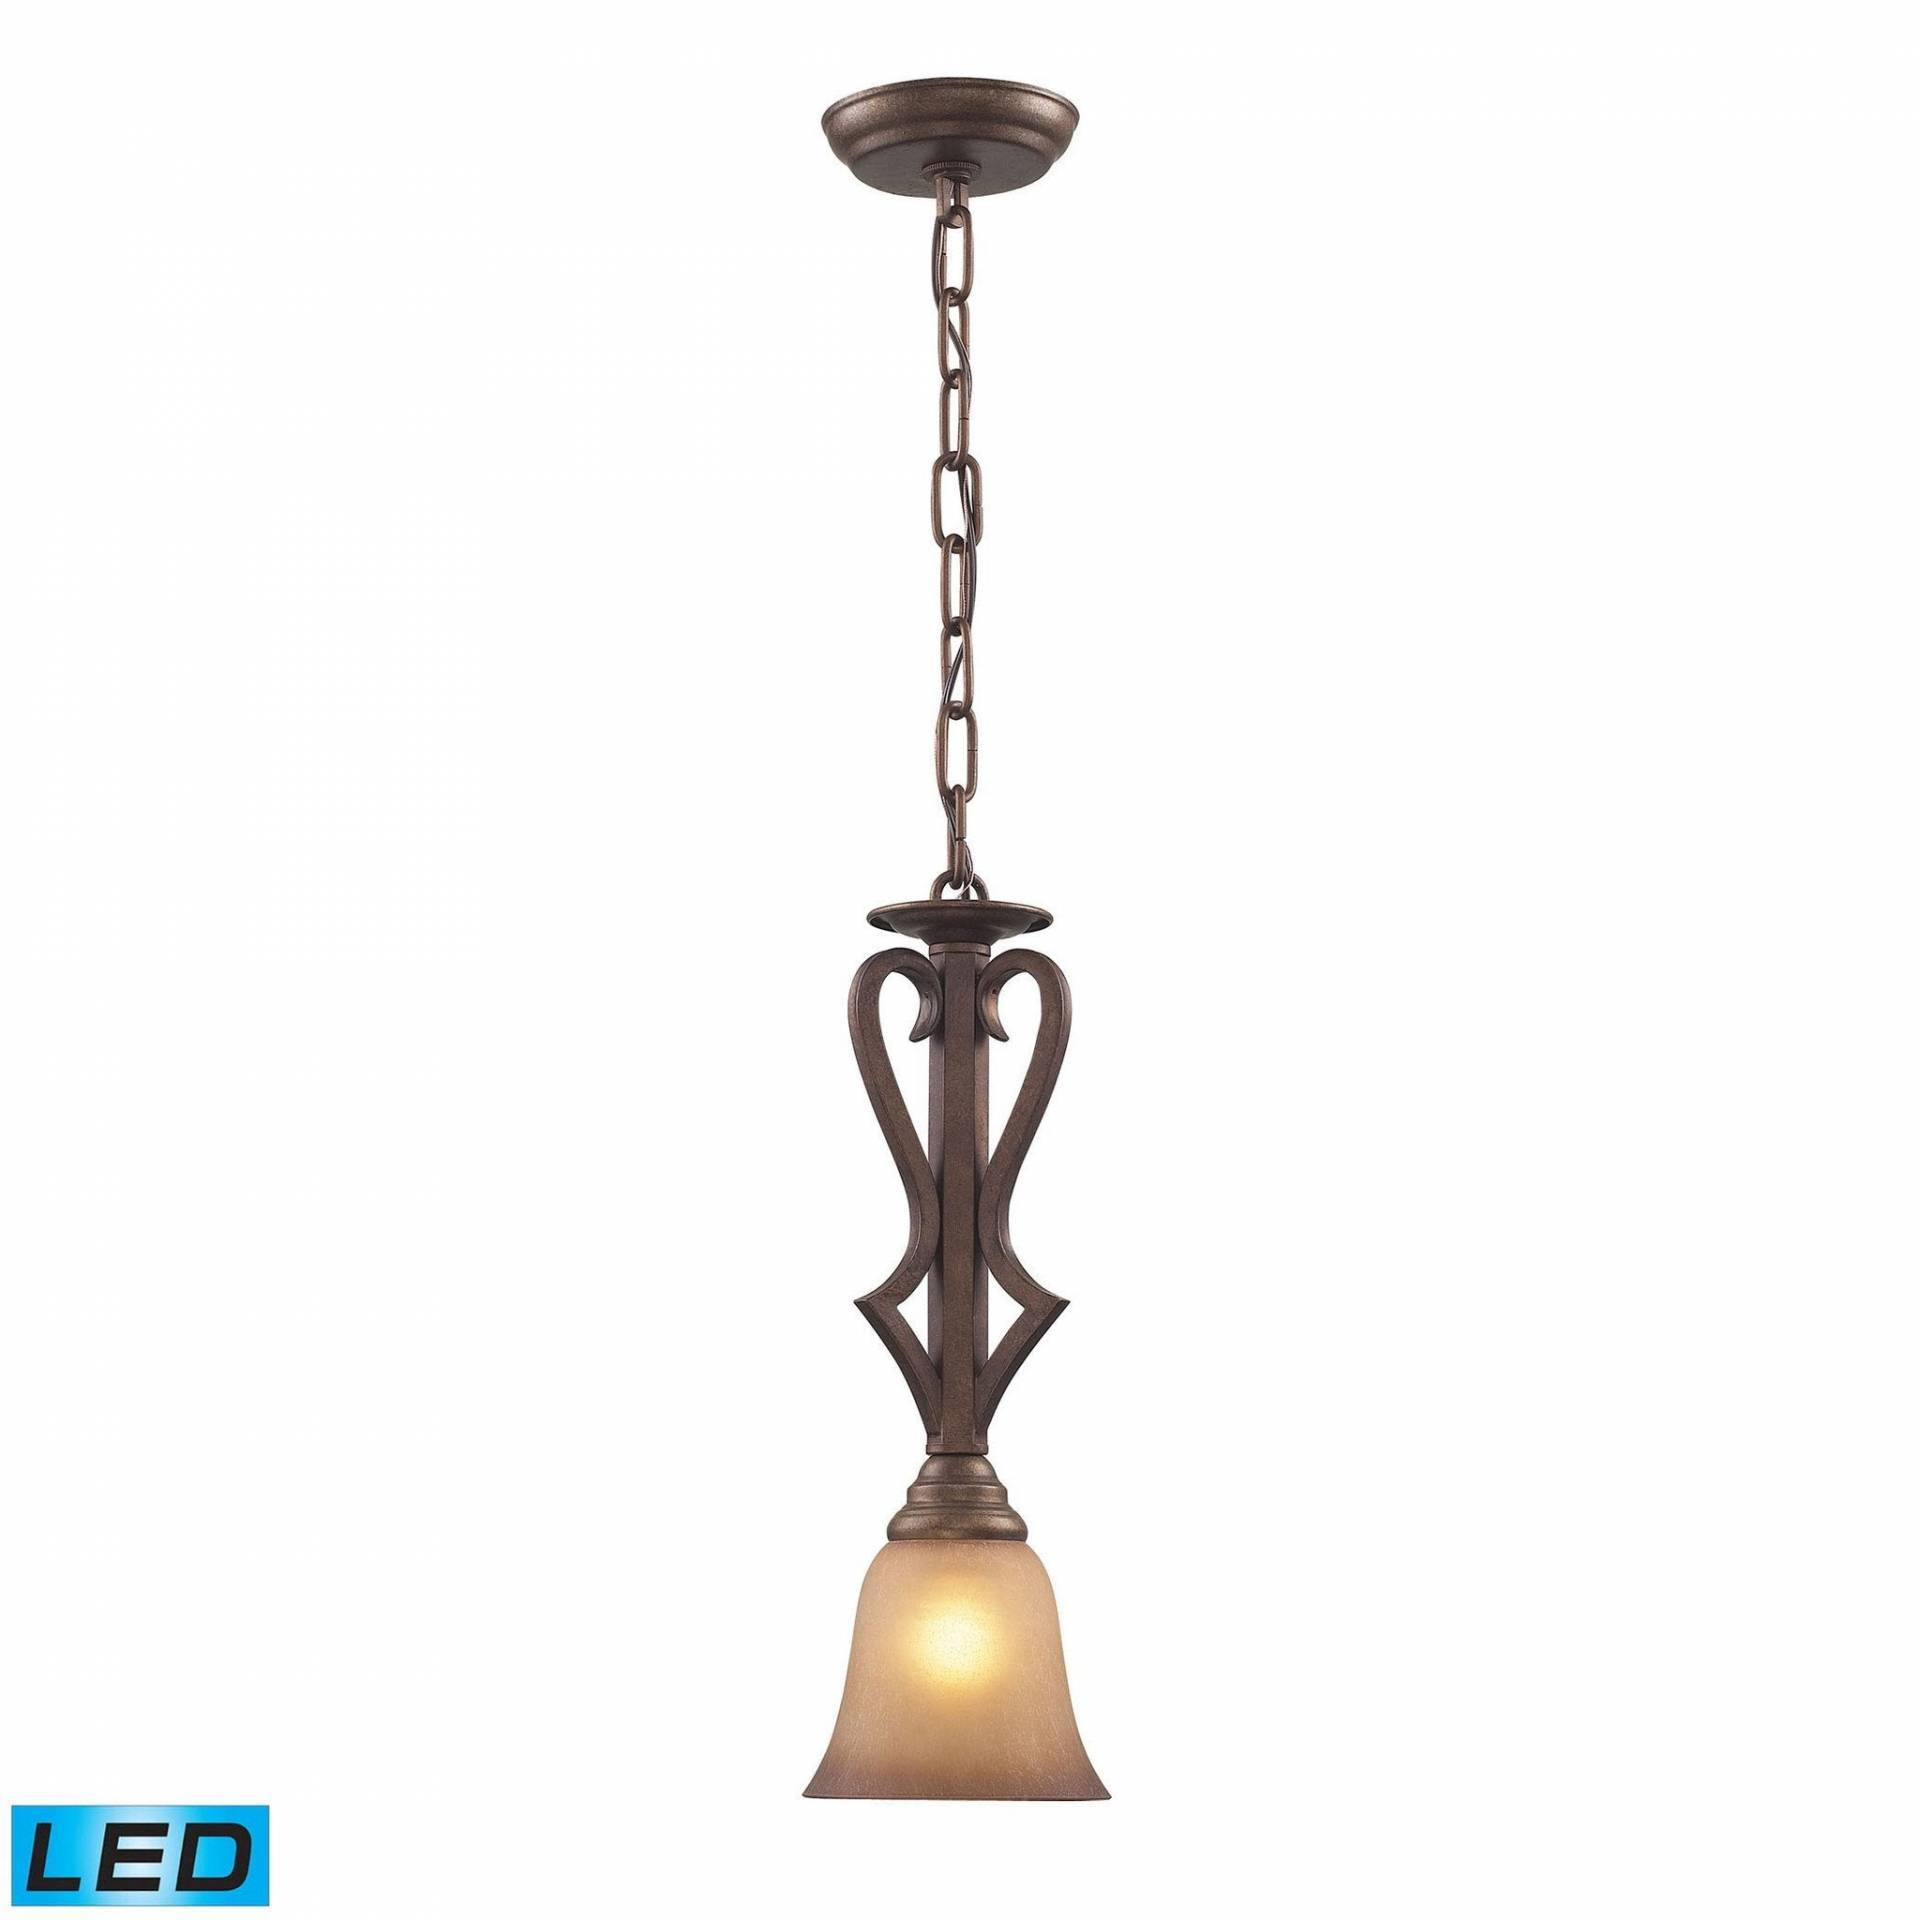 ELK Lighting 9325/1-LED Lawrenceville Collection Mocha Finish from ELK Lighting